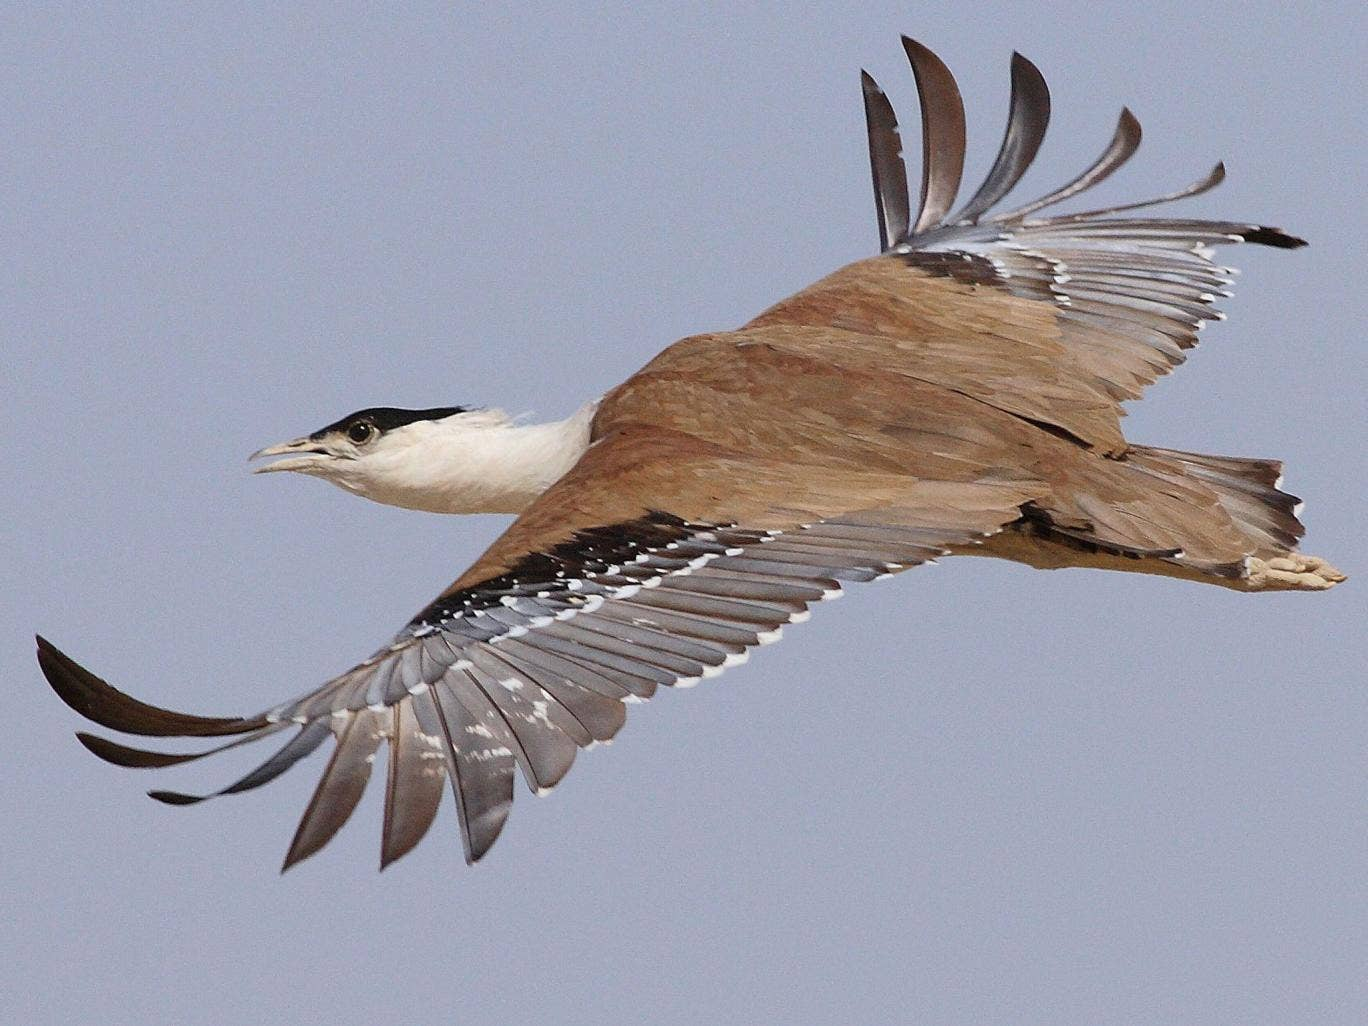 Conservationists hope to save the Great Indian Bustard from extinction